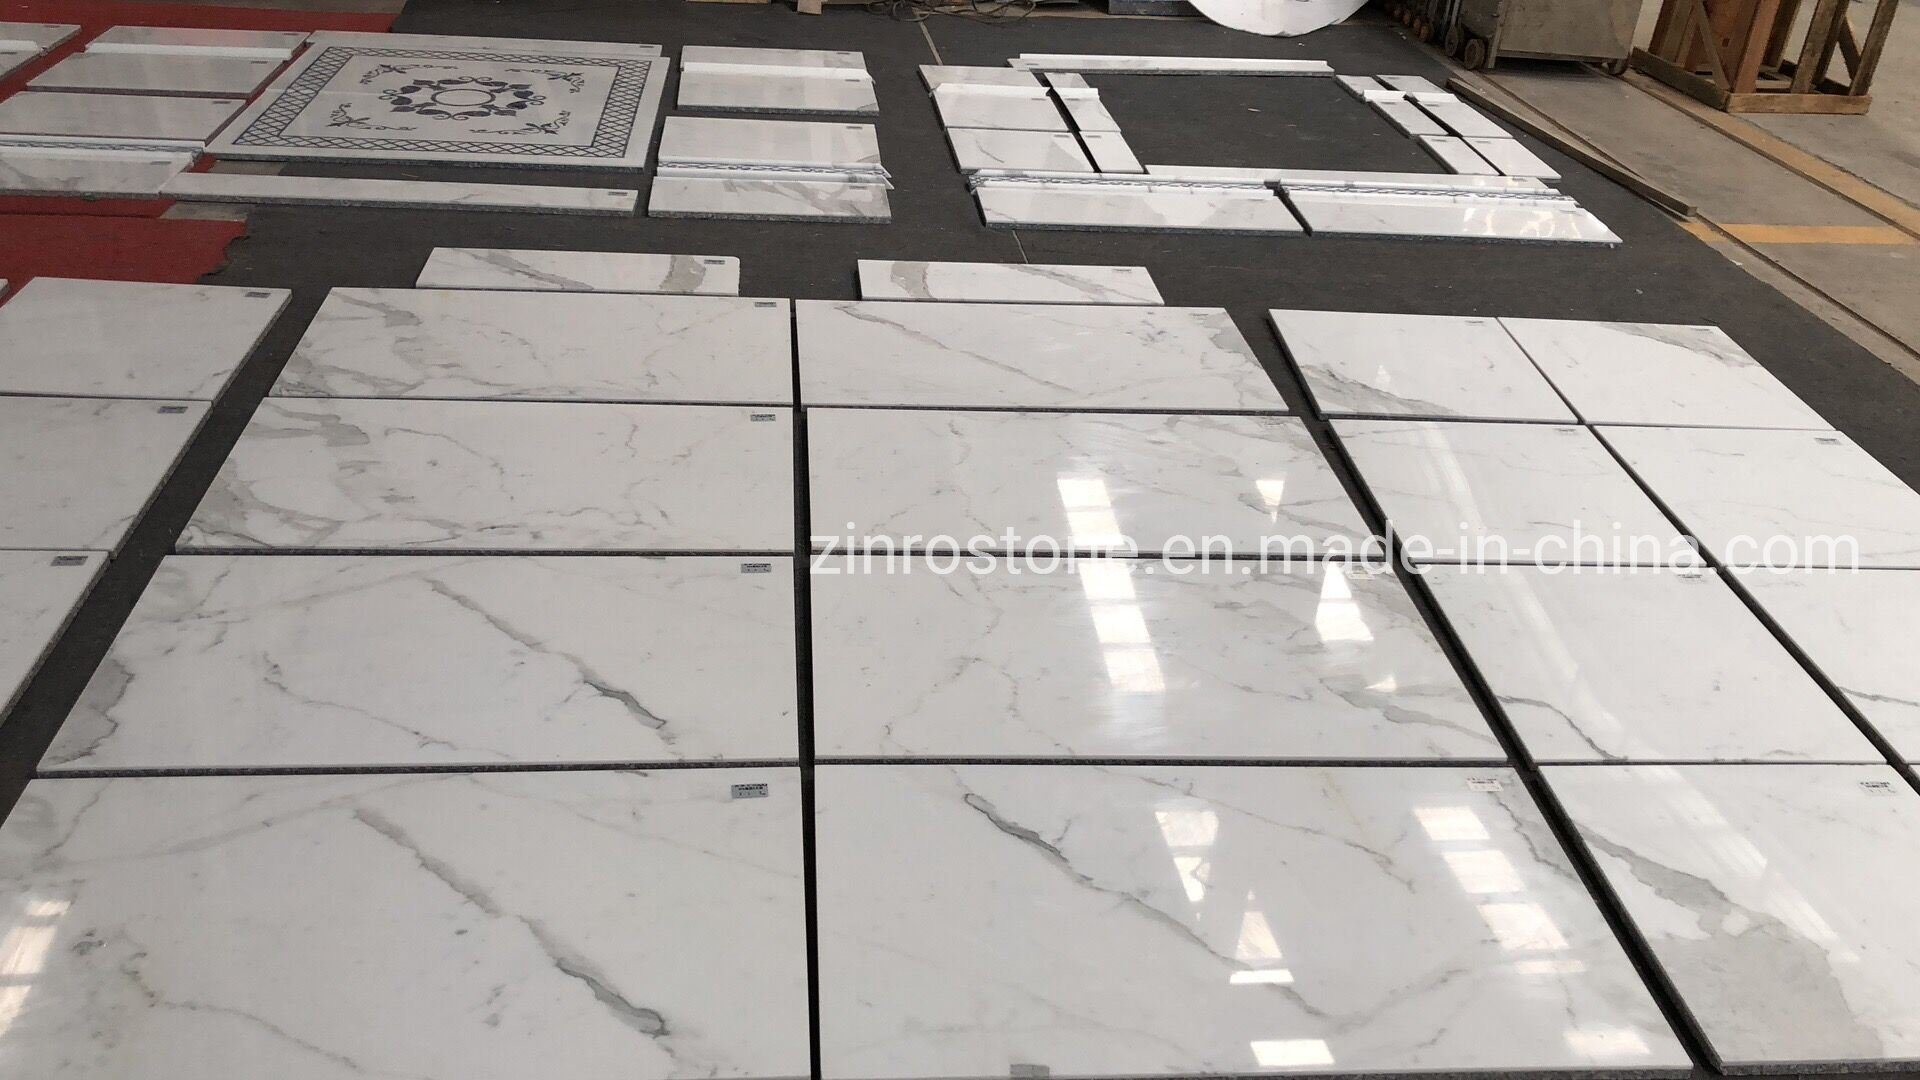 China Natural Calacatta White Marble Tiles For Wall Floor Tiles Countertop China Marble Stone Marbe Floor Tile